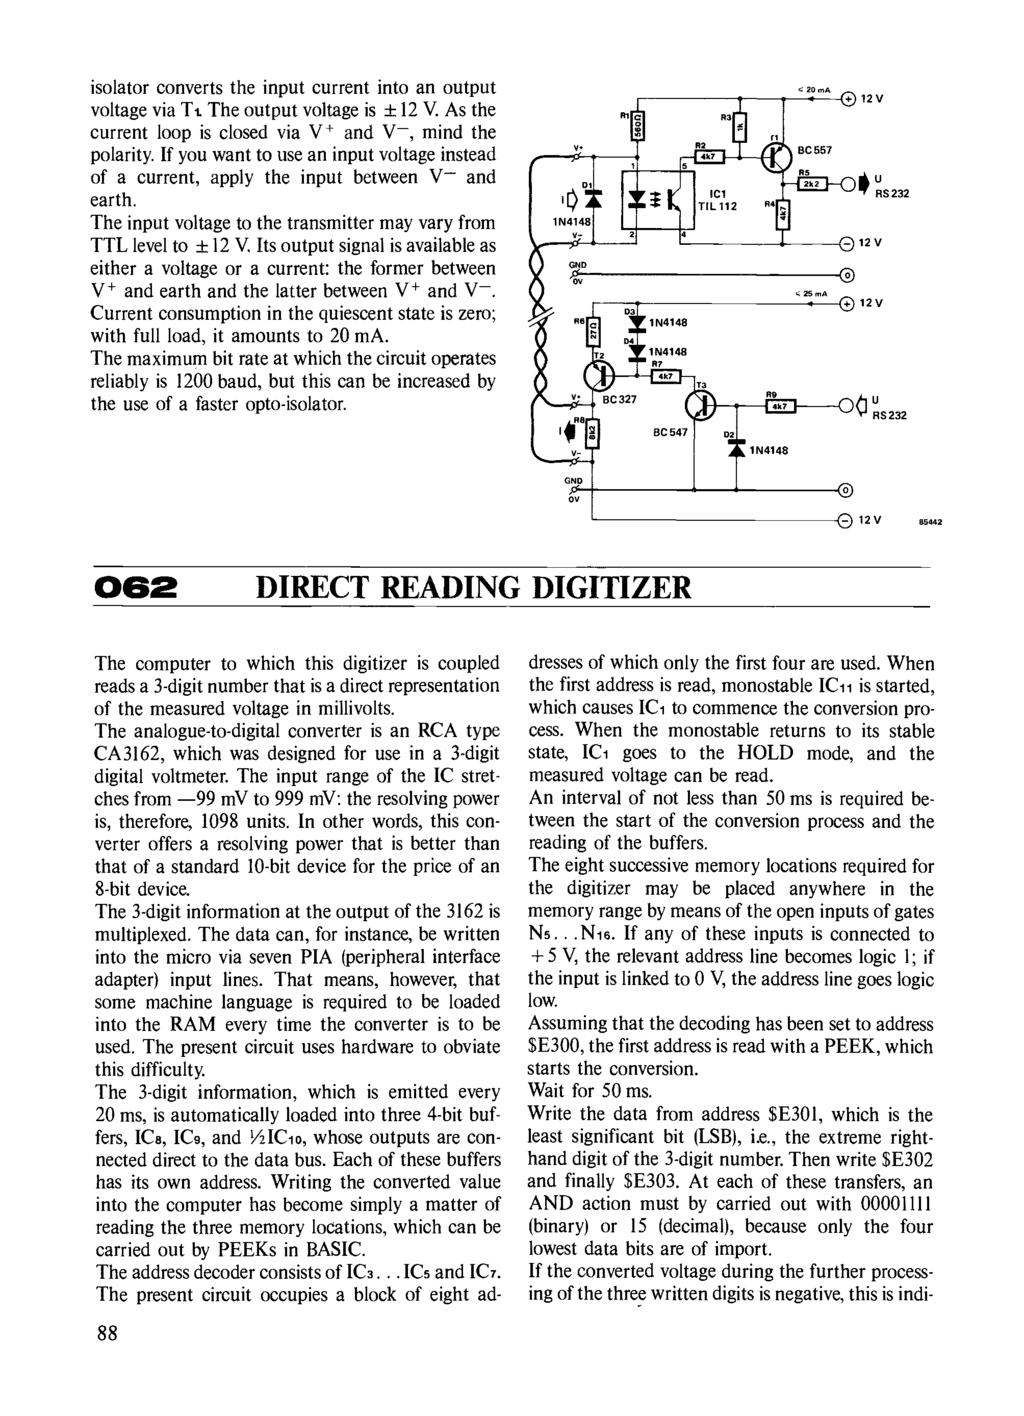 Circuits Elektor Electronics Pdf Beautiful Car Brake Lights By Bc327 Isolator Converts The Input Current Into An Output Voltage Via T